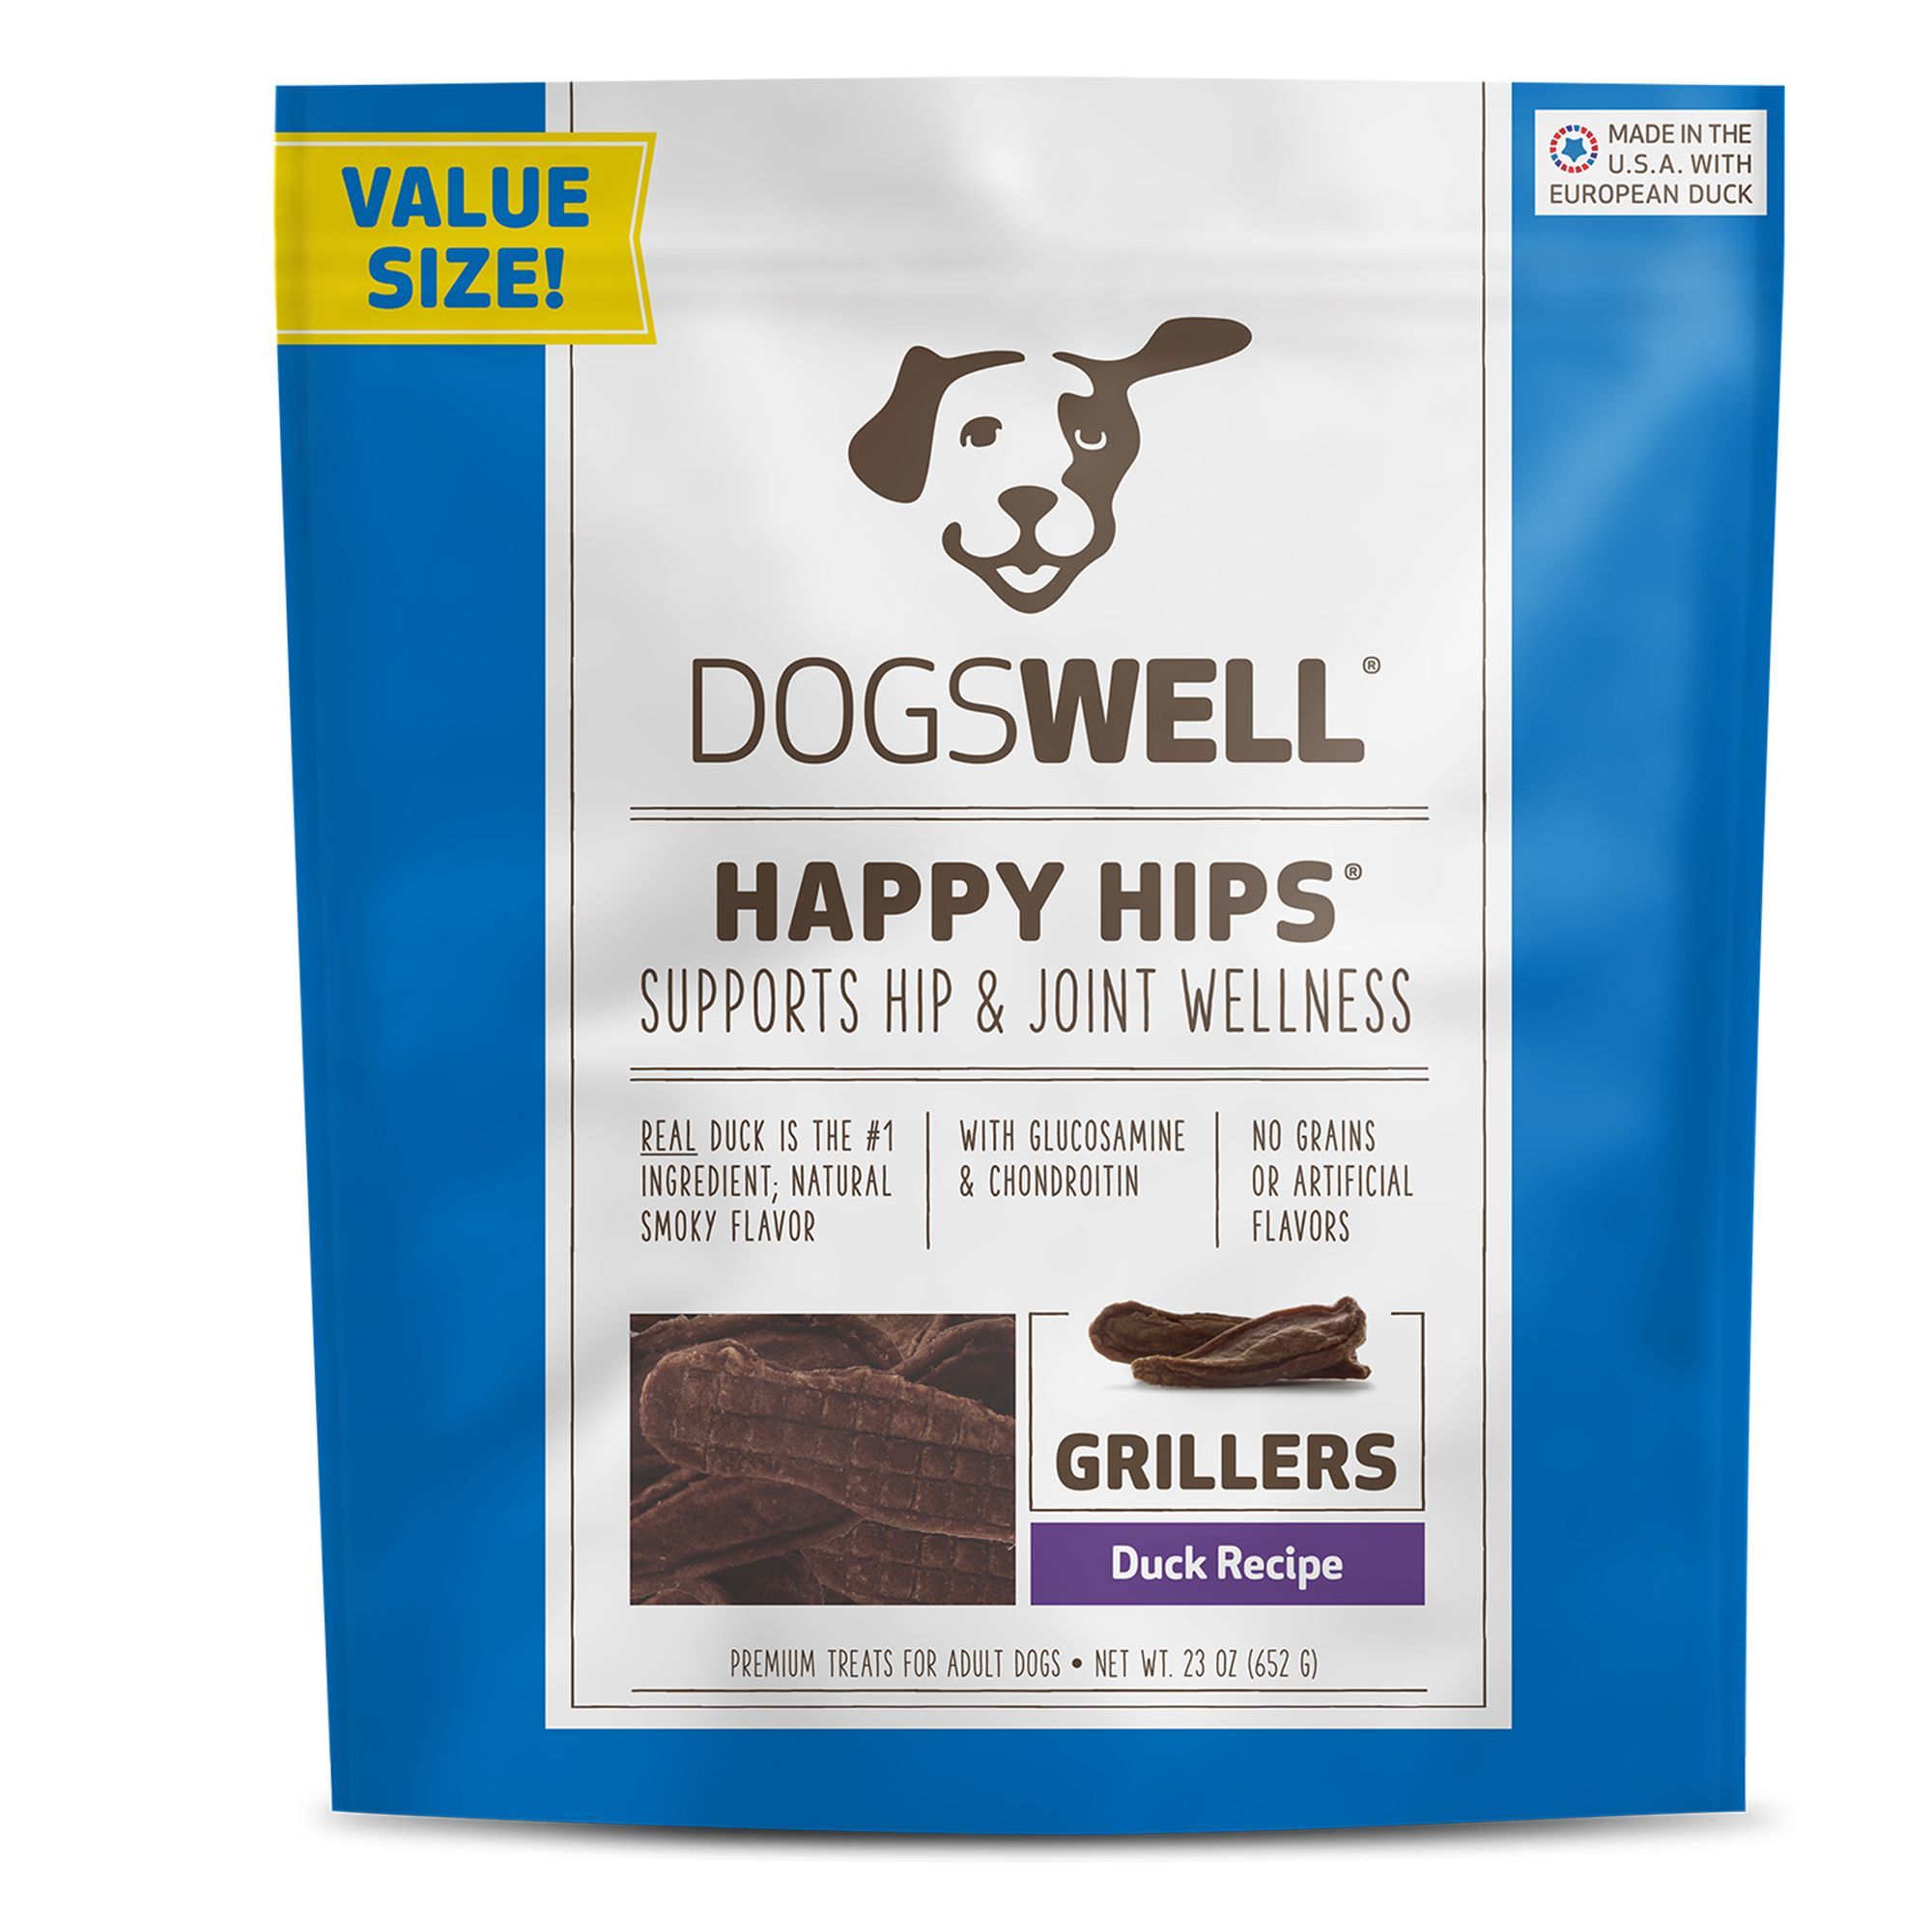 Dogswell Happy Hips Grillers Dog Treat - Grain Free, Duck size: 23 Oz, Griller Treat, Adult 5271918